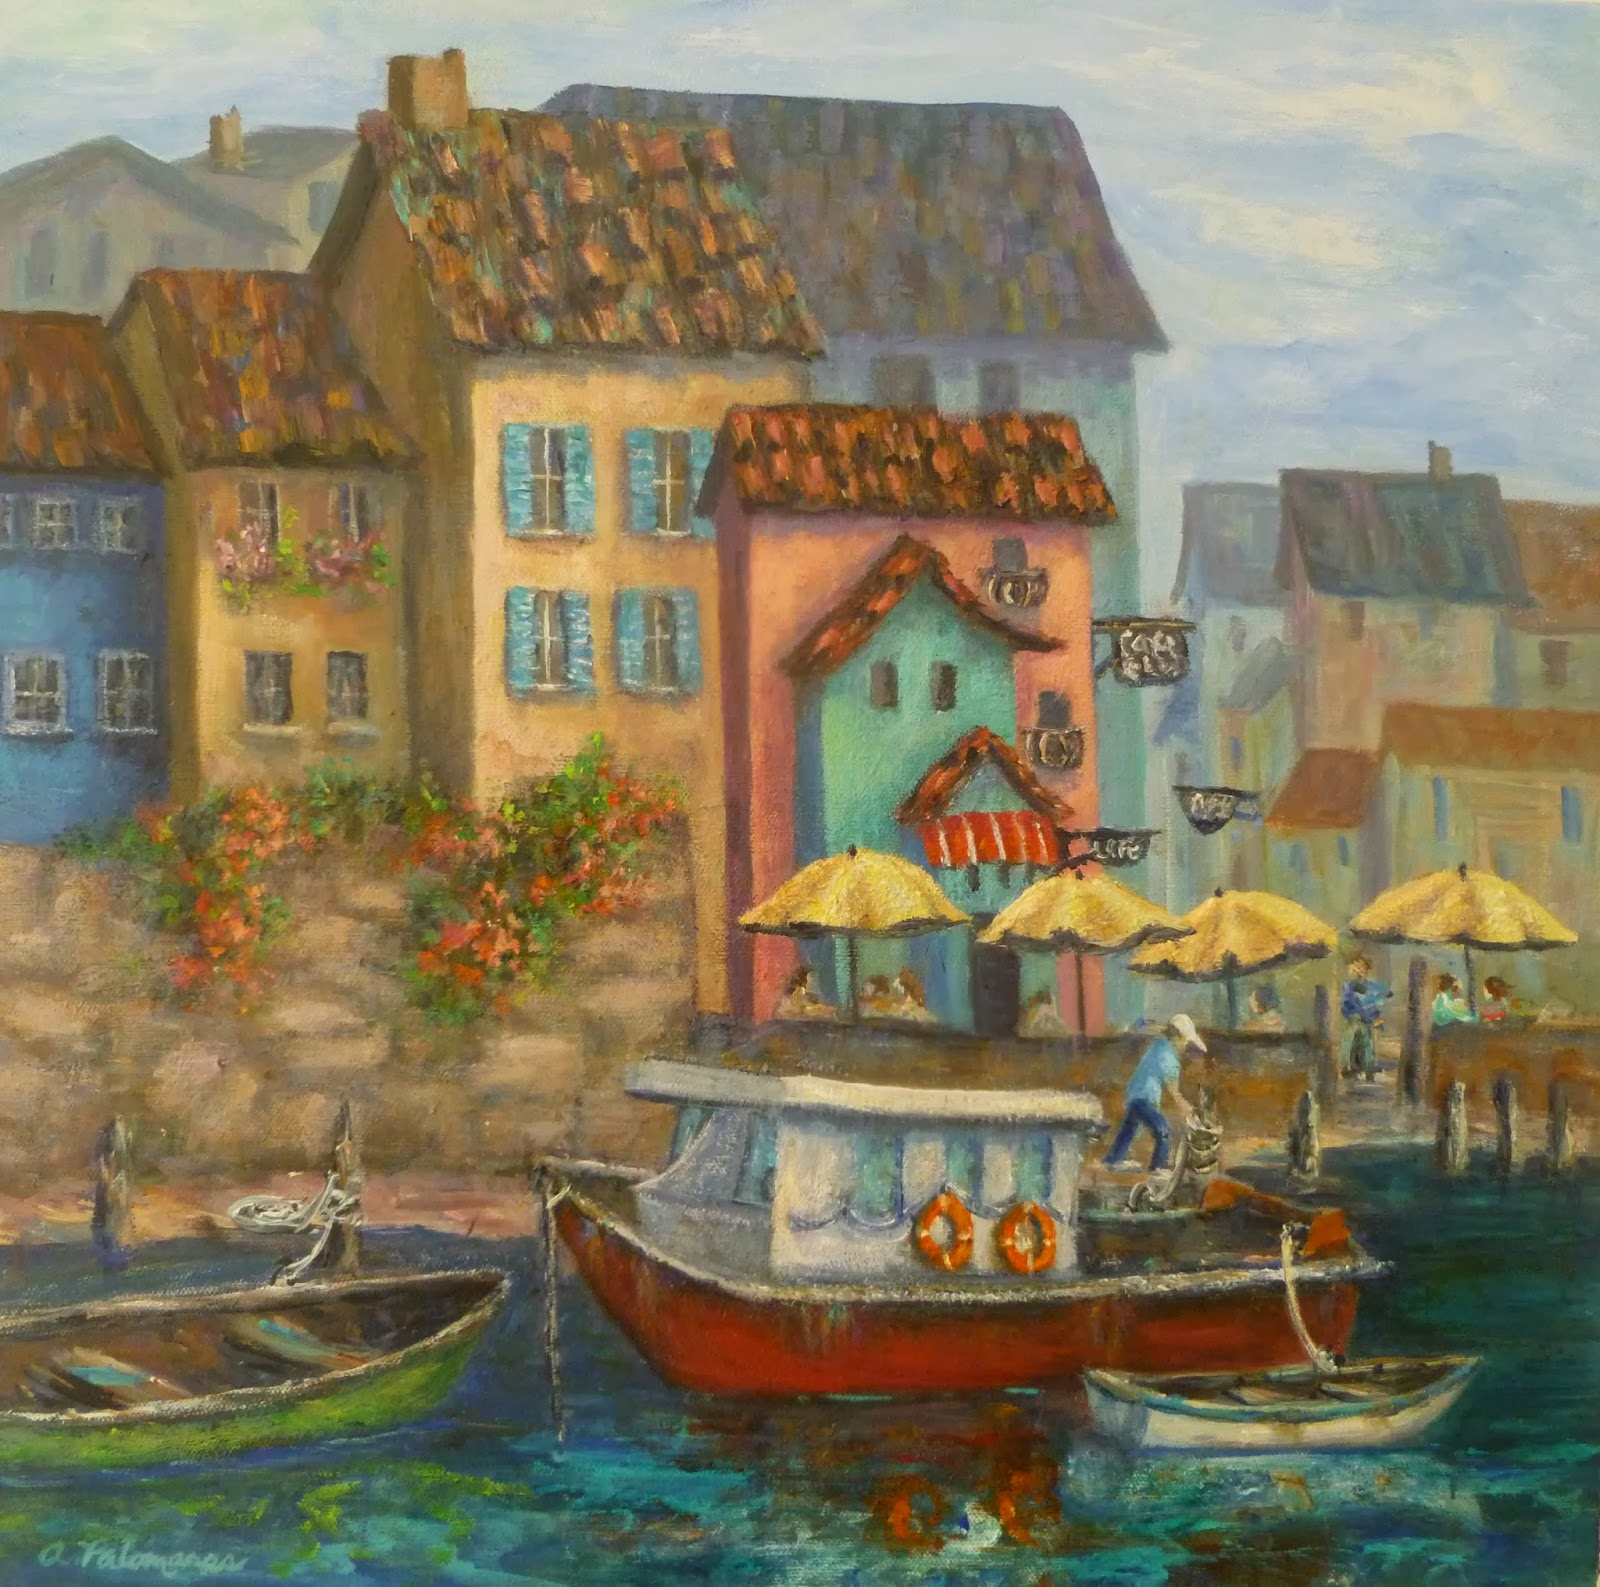 Painting of boats by an Italian Village